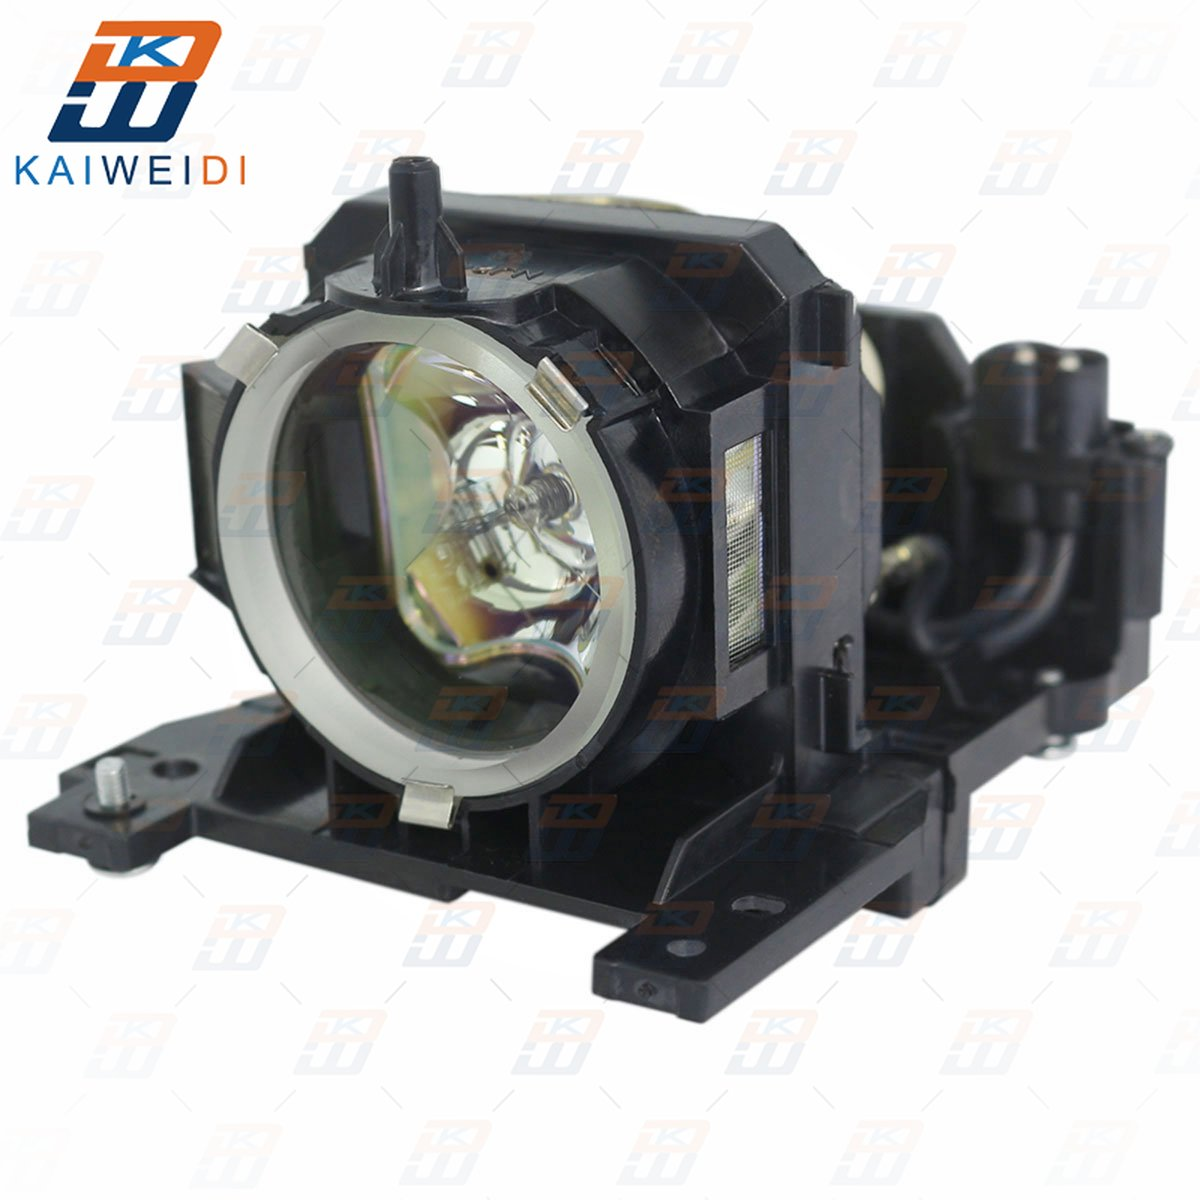 DT00911 CP-WX400 CP-WX410 CP-X201 CP-X206 CP-X301 CP-X306 CP-X401 CP-X450 CP-X467 CP-ED-X31 CP-X33 Projector Lamp For HITACHI